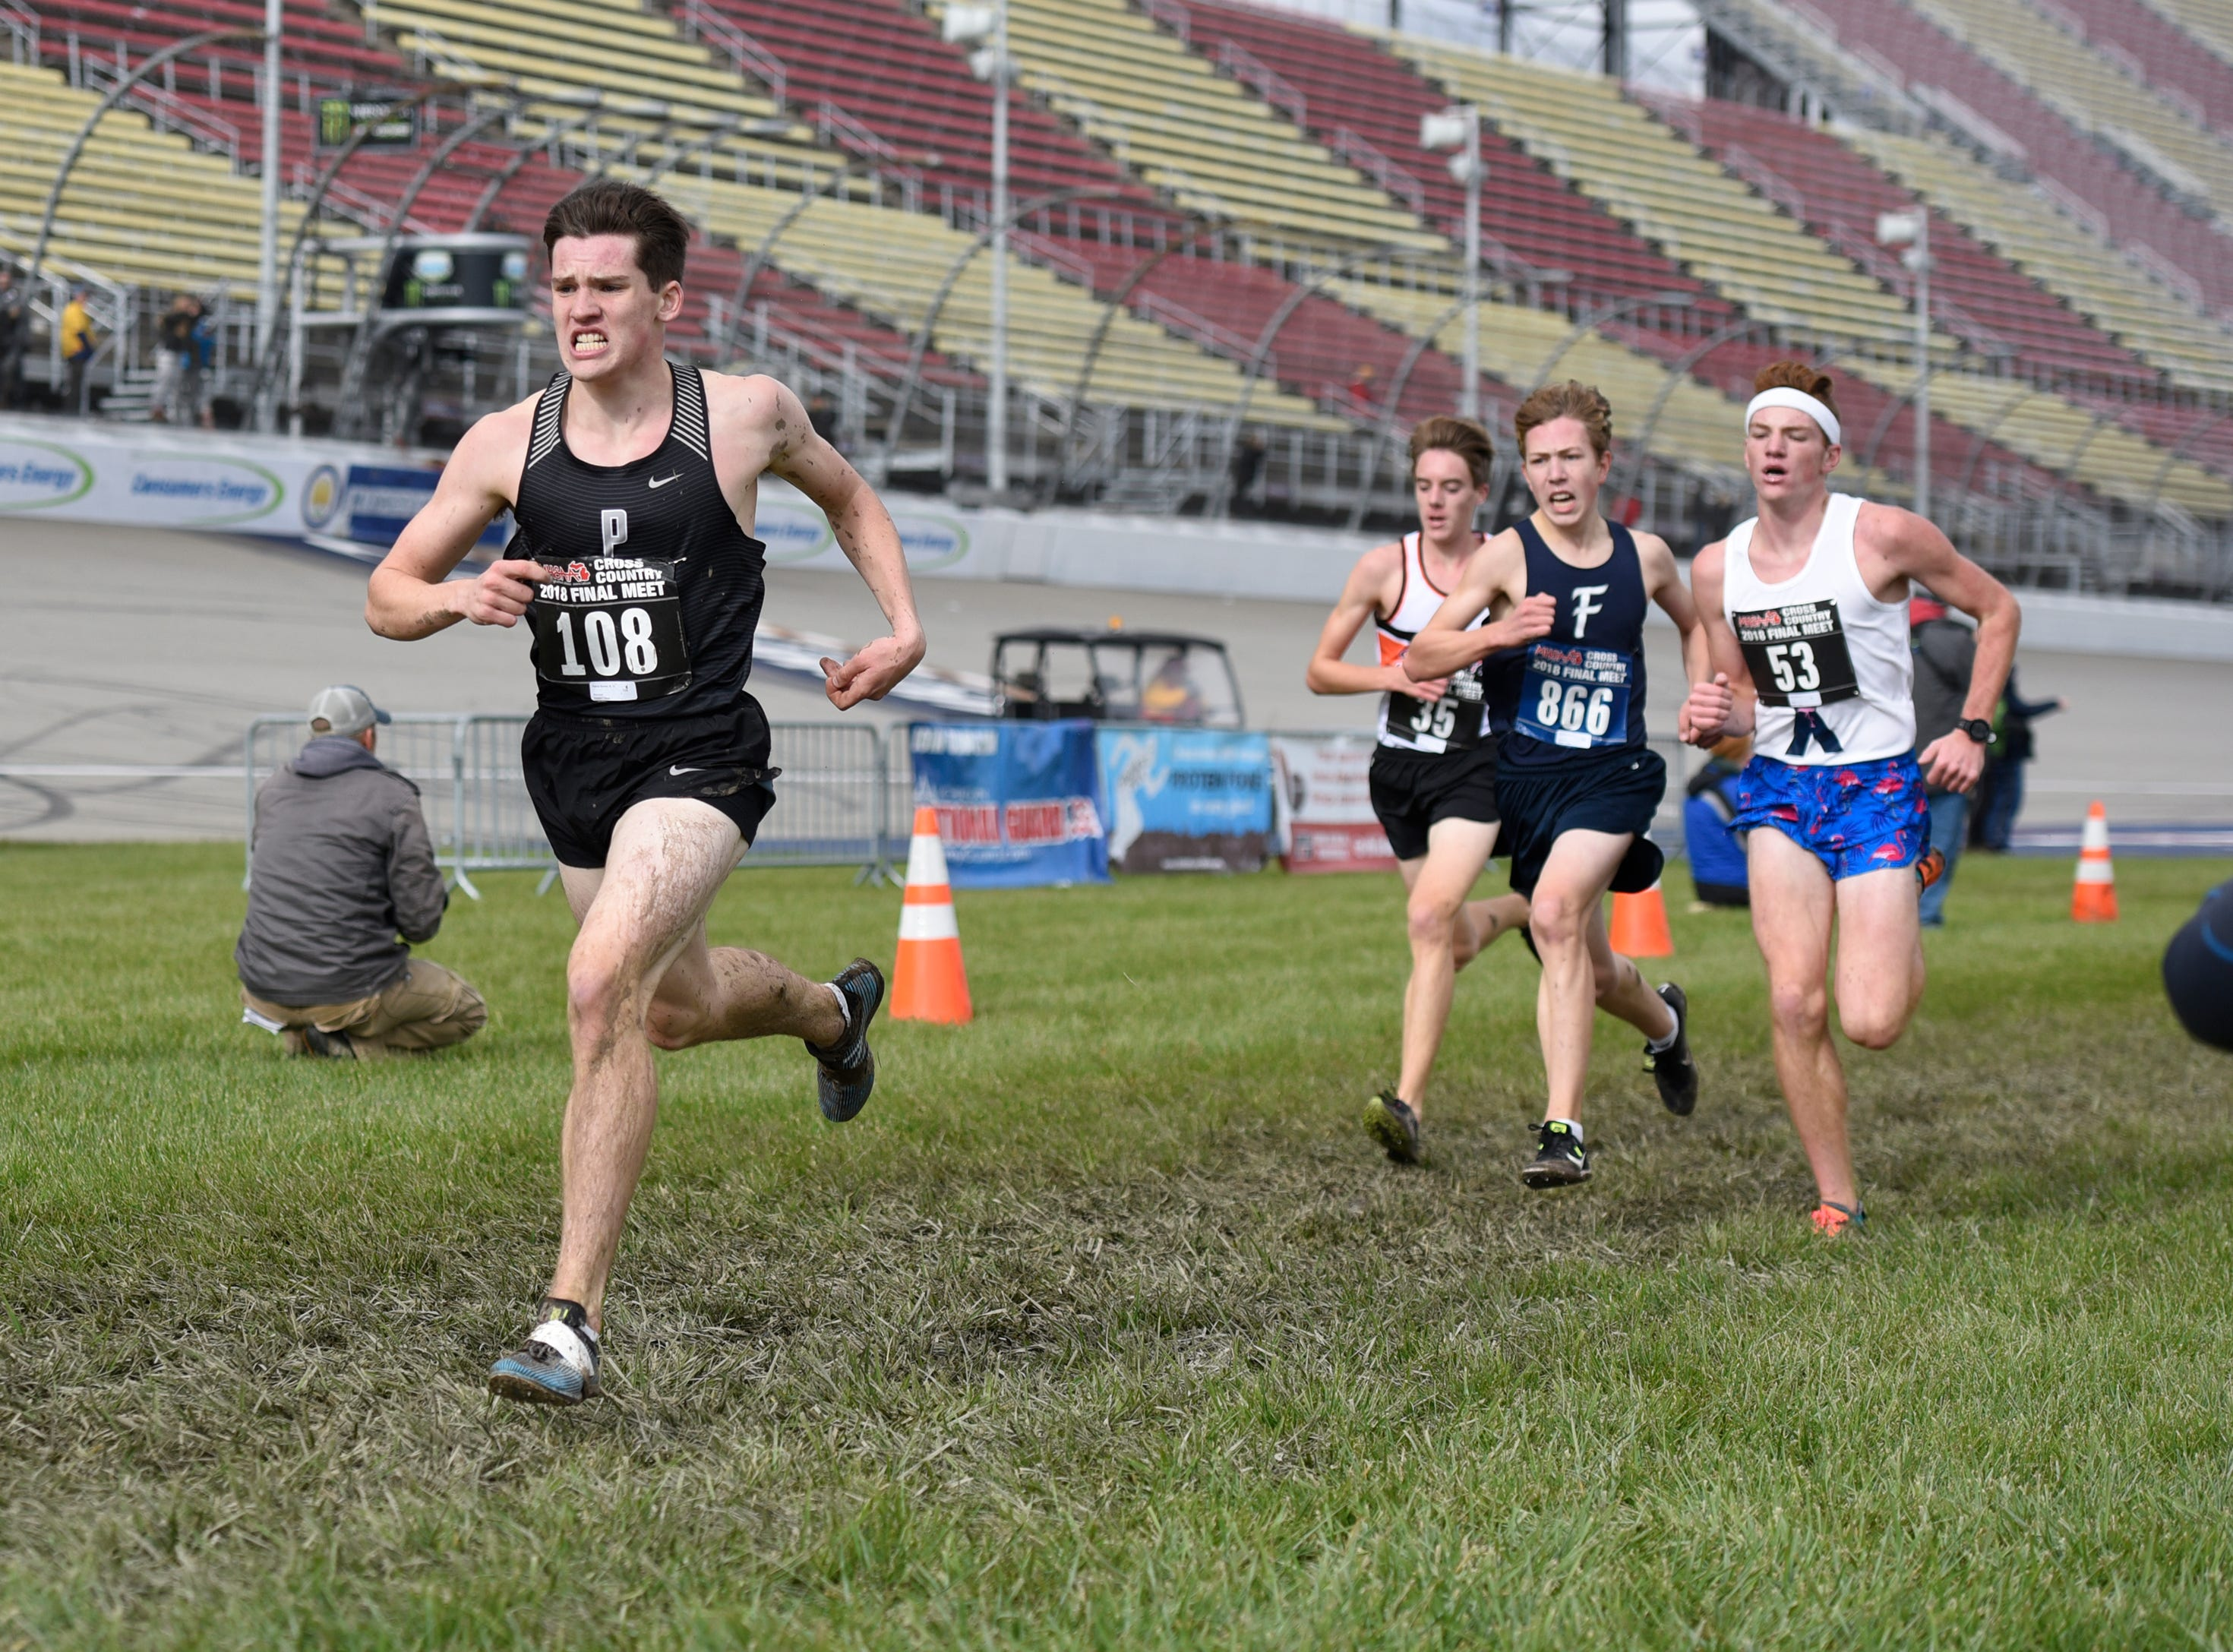 Plymouth's Patrick Barnes during the Division 1 2018 cross country finals at Michigan International Speedway.